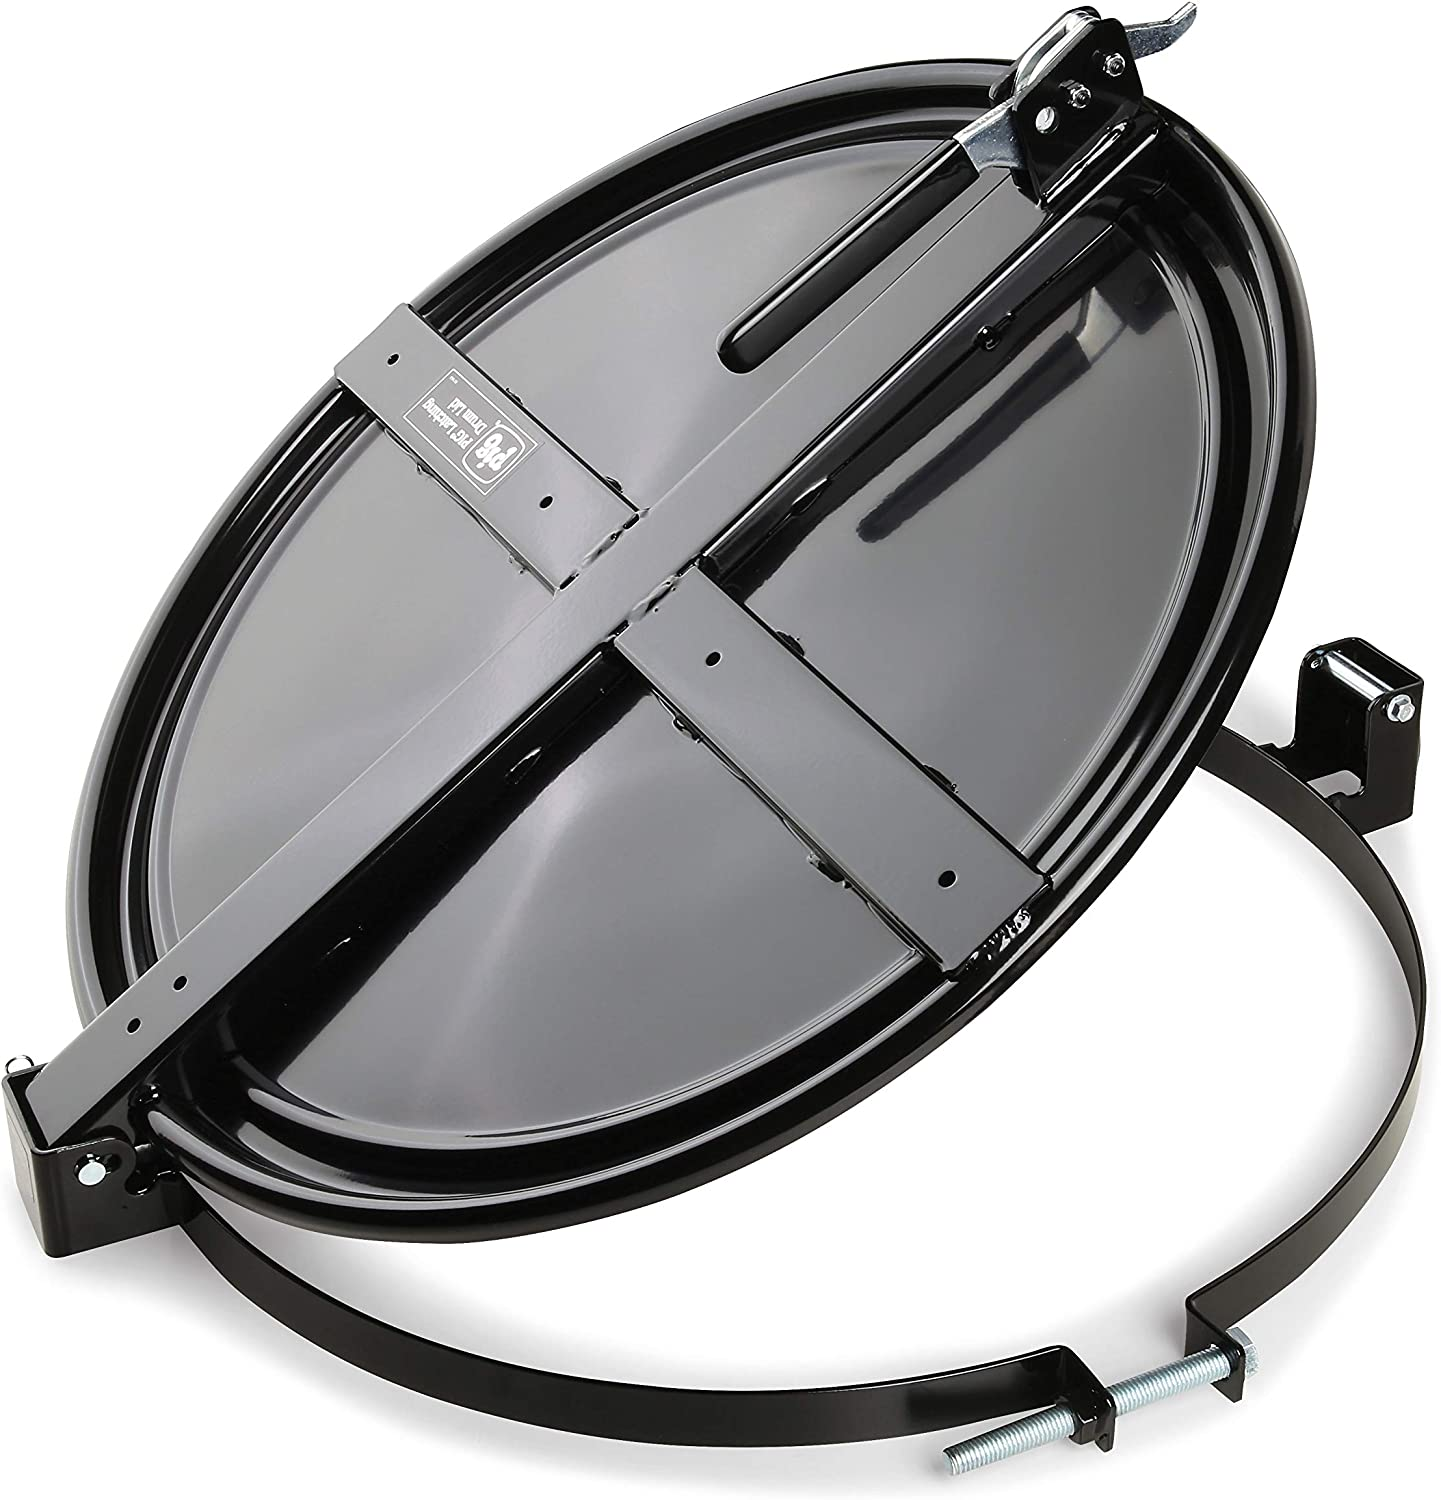 New Pig Latching Drum Lid | For 55 Gal Steel Drums | One-Hand Latch | Bolt-Ring | Locking Lid | Black | DRM659-BK